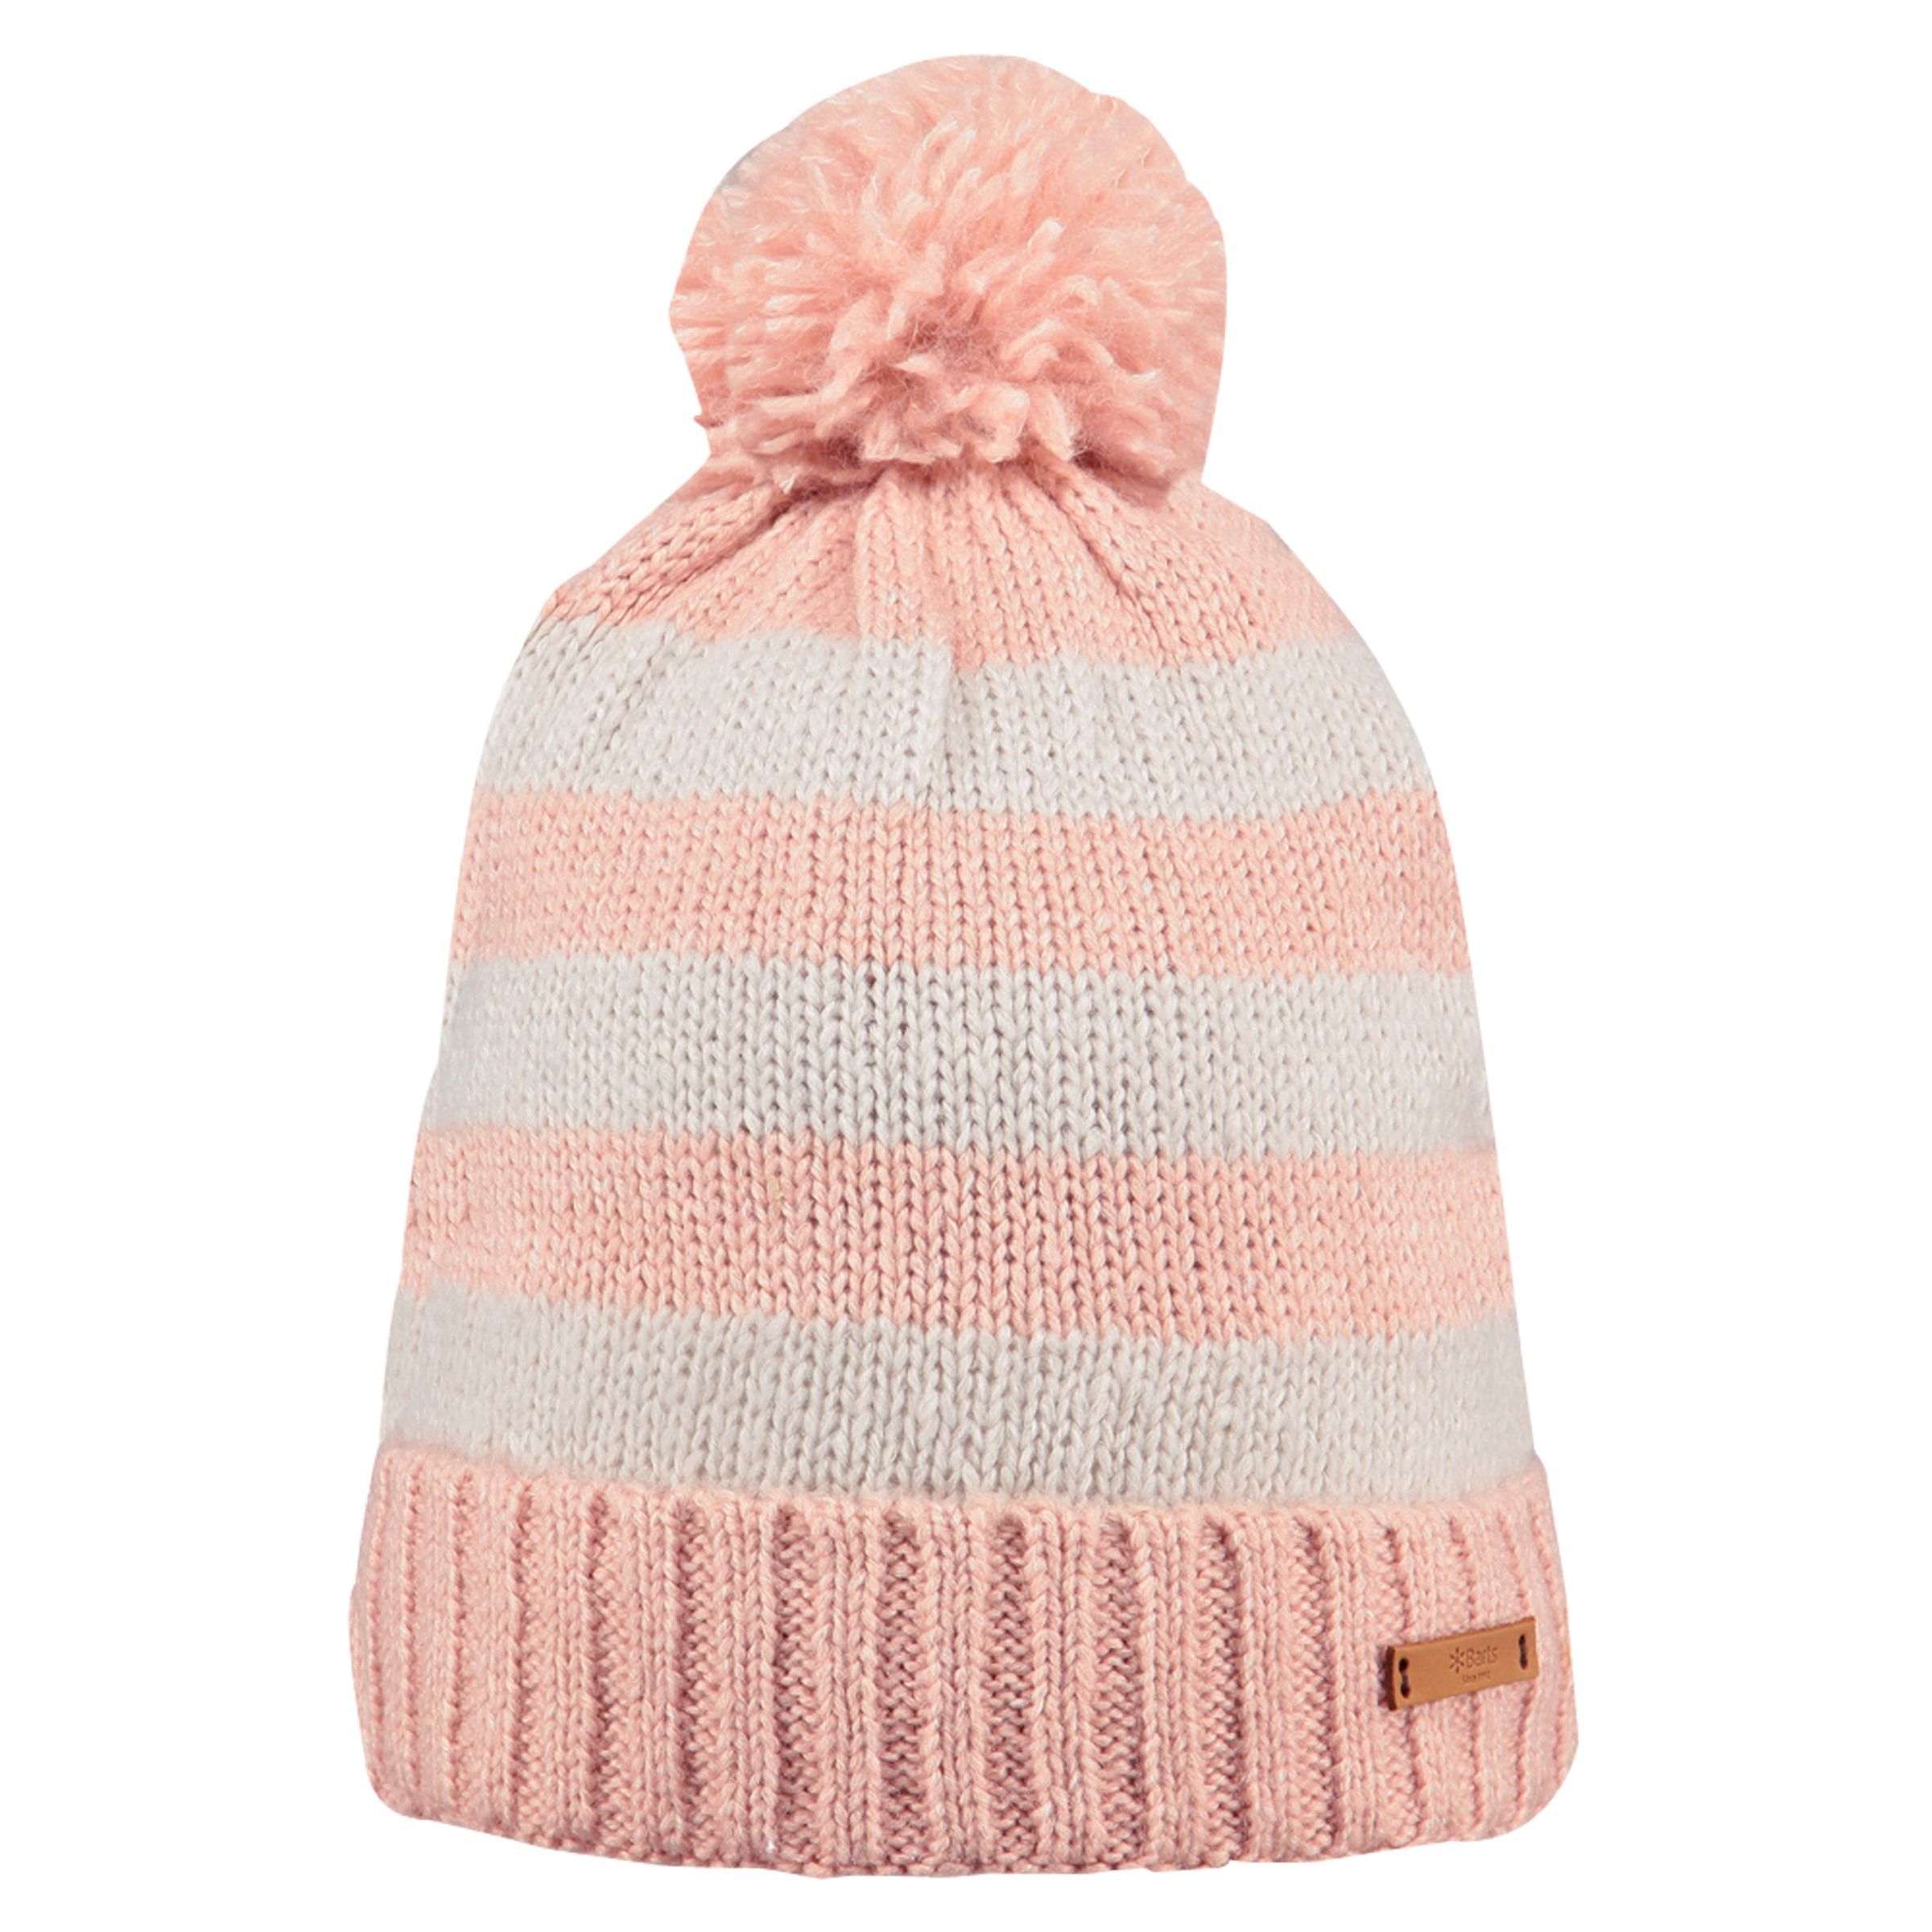 Barts Barts Meuse Beanie, One Size, Bloom